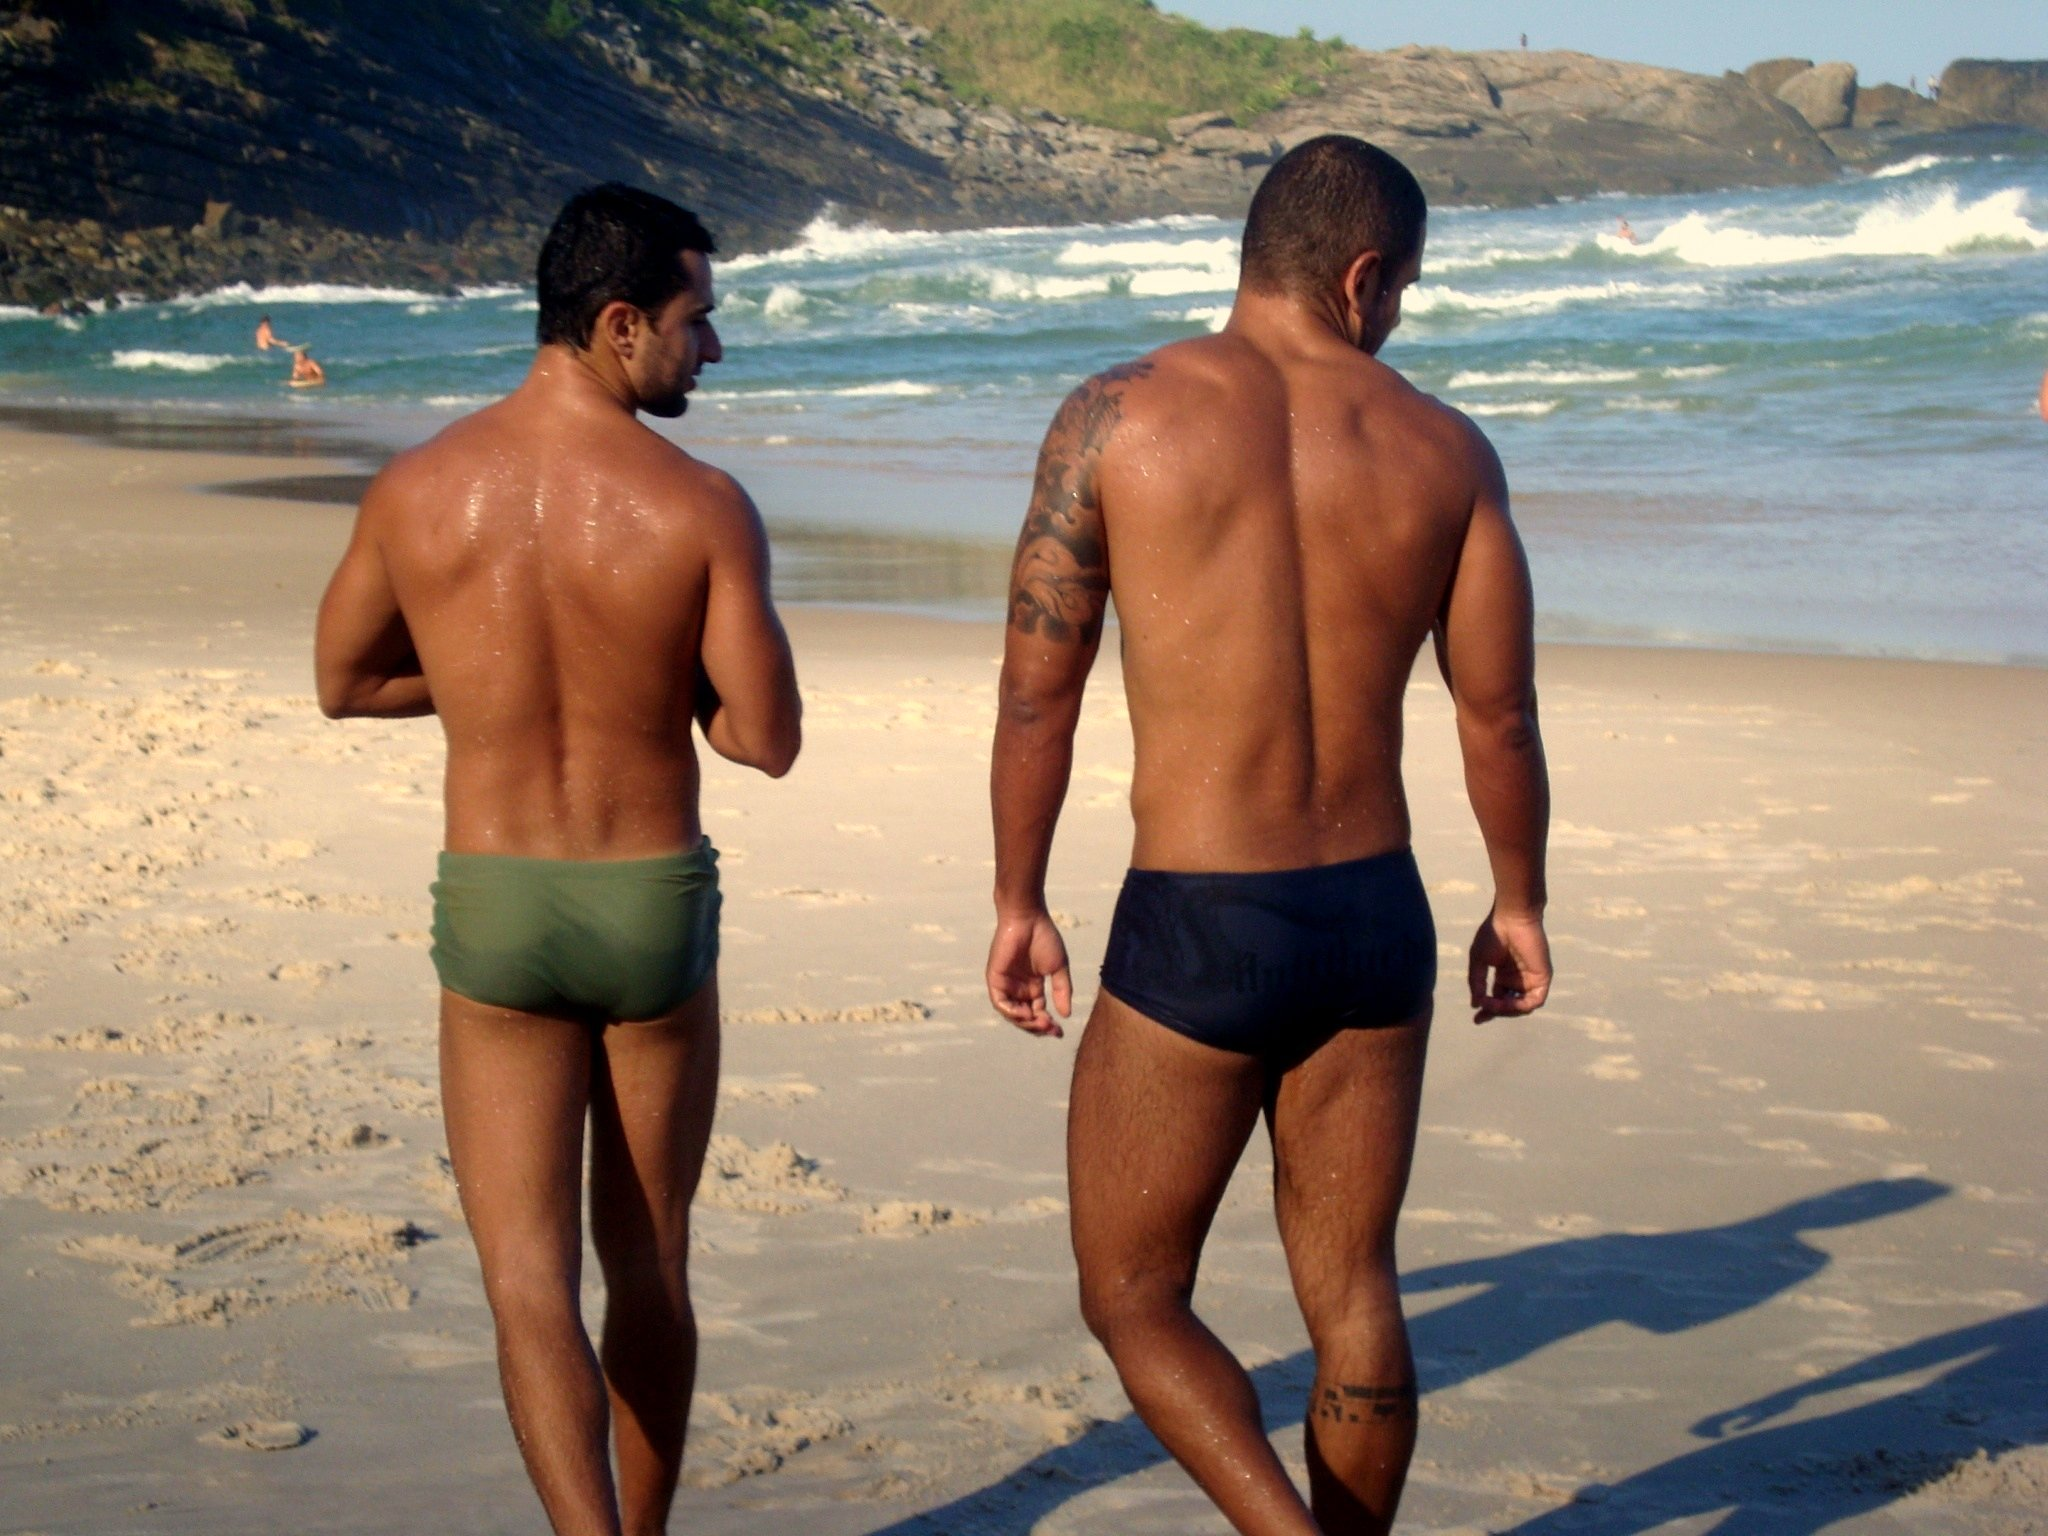 porno gay cruising escort gay en brasil